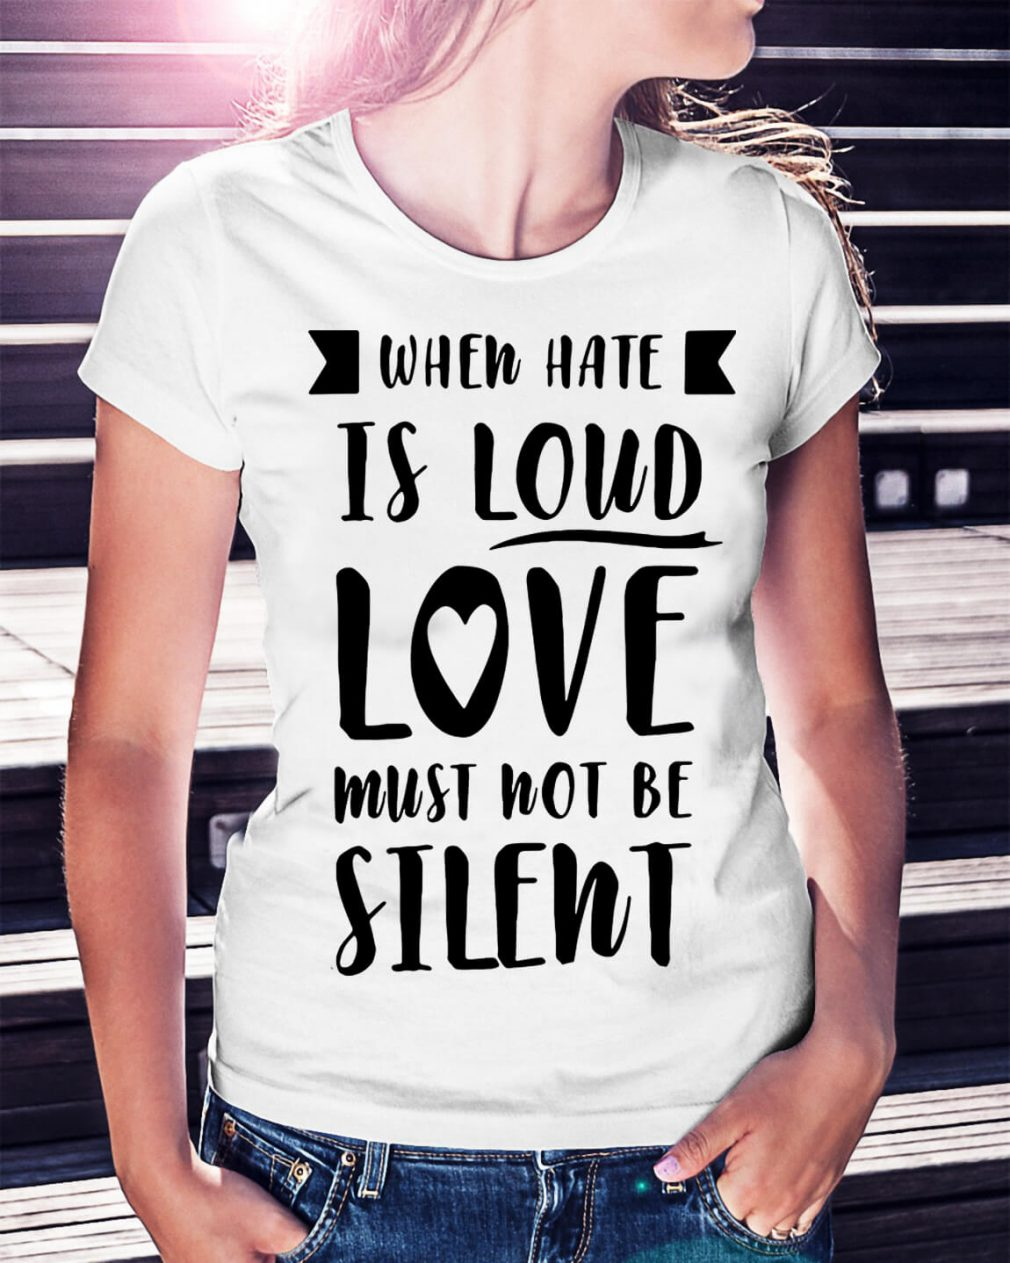 When hate is loud love must not be silent shirt